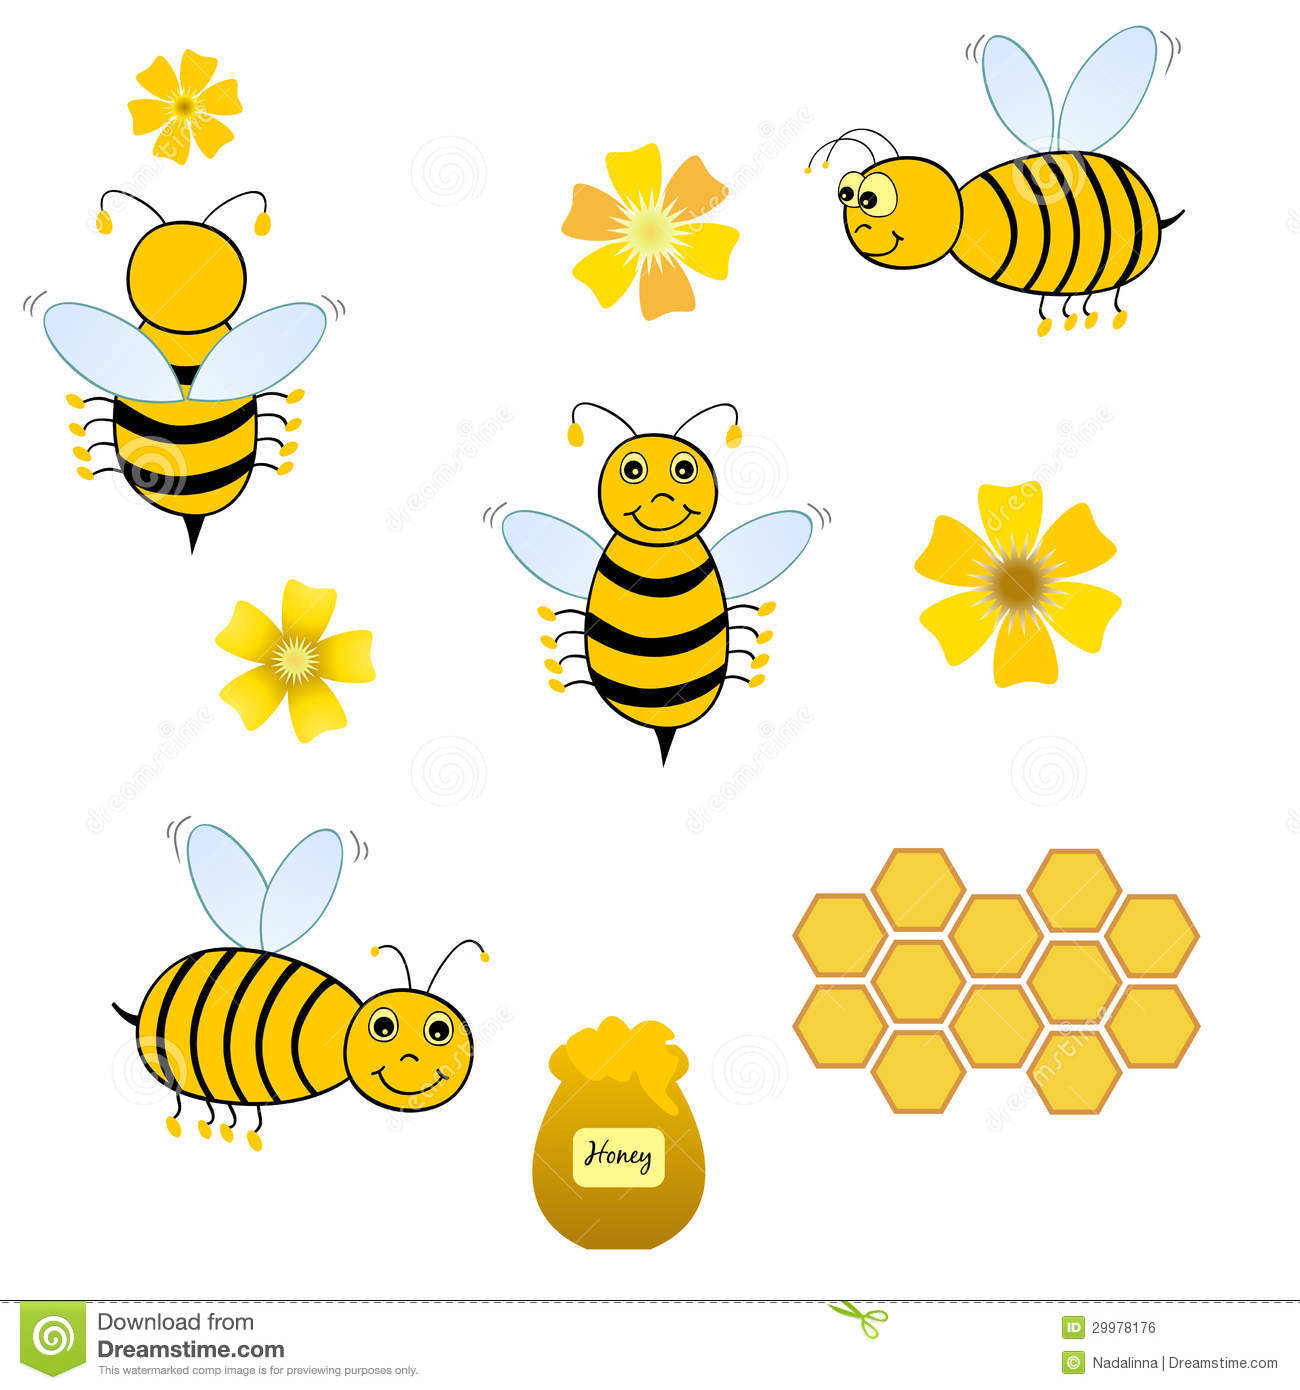 Bees collage stock illustration Illustration of cute